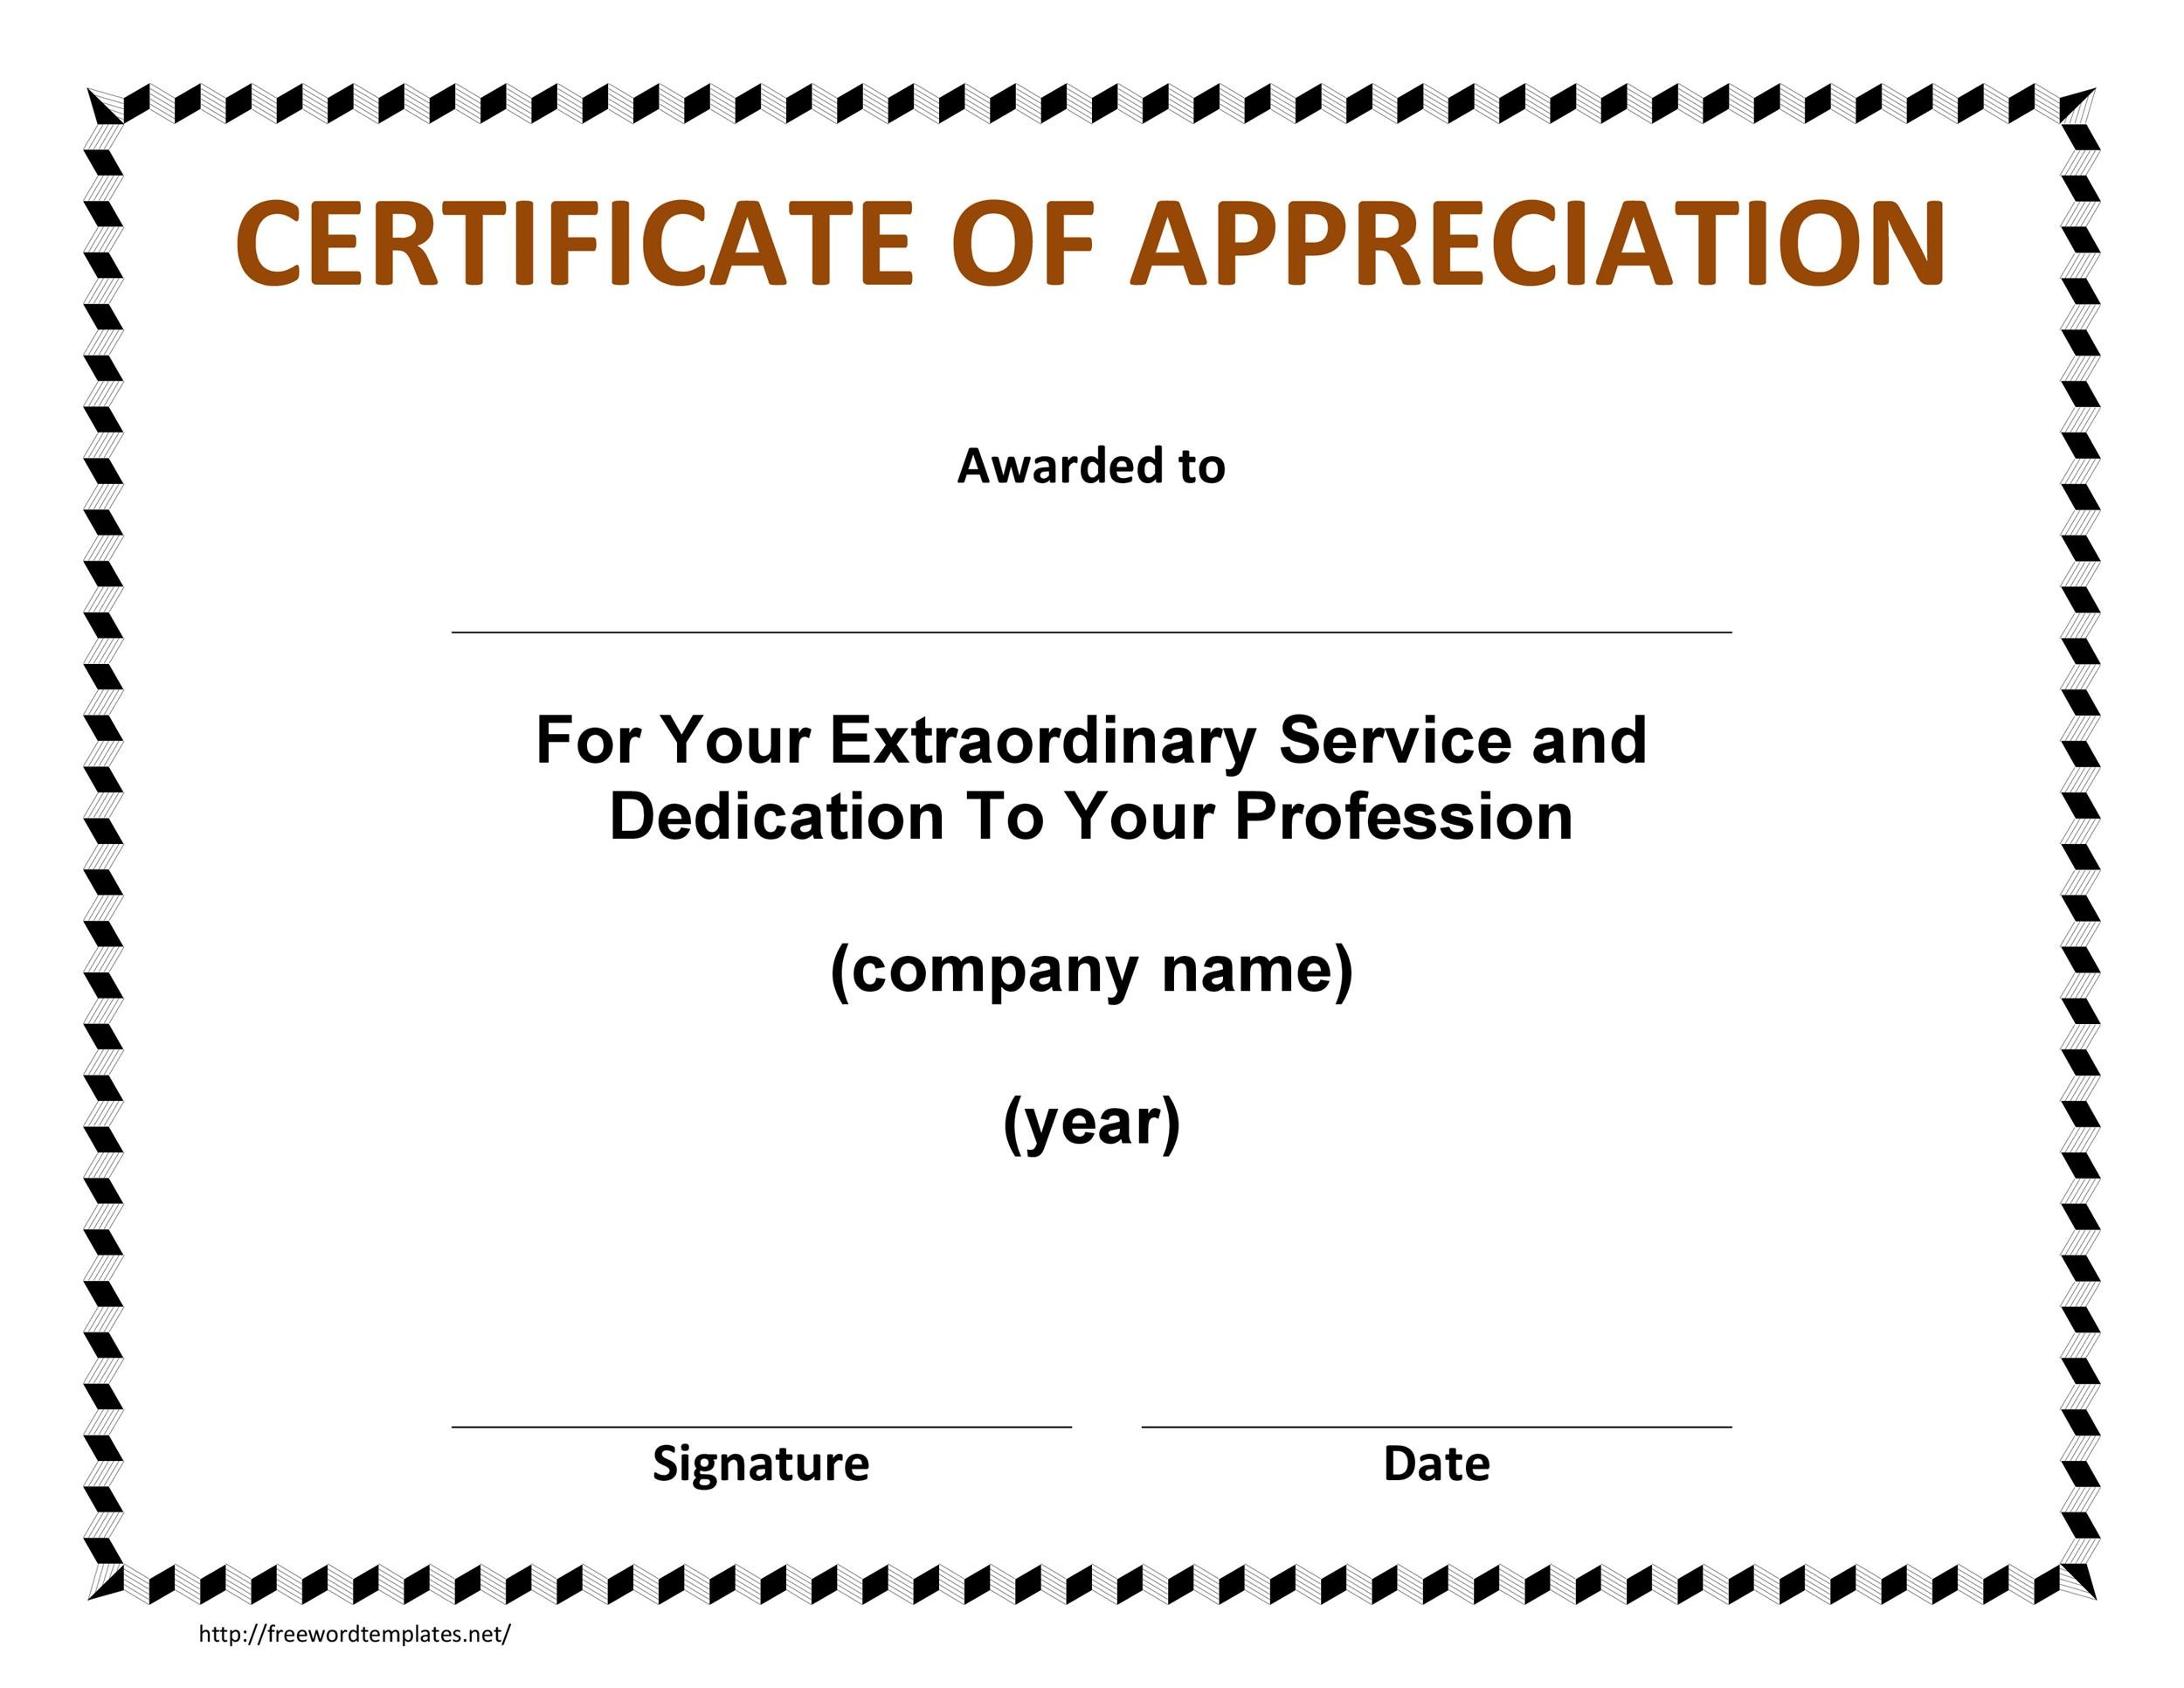 30 free certificate of appreciation templates and letters printable certificate of appreciation 04 yelopaper Choice Image